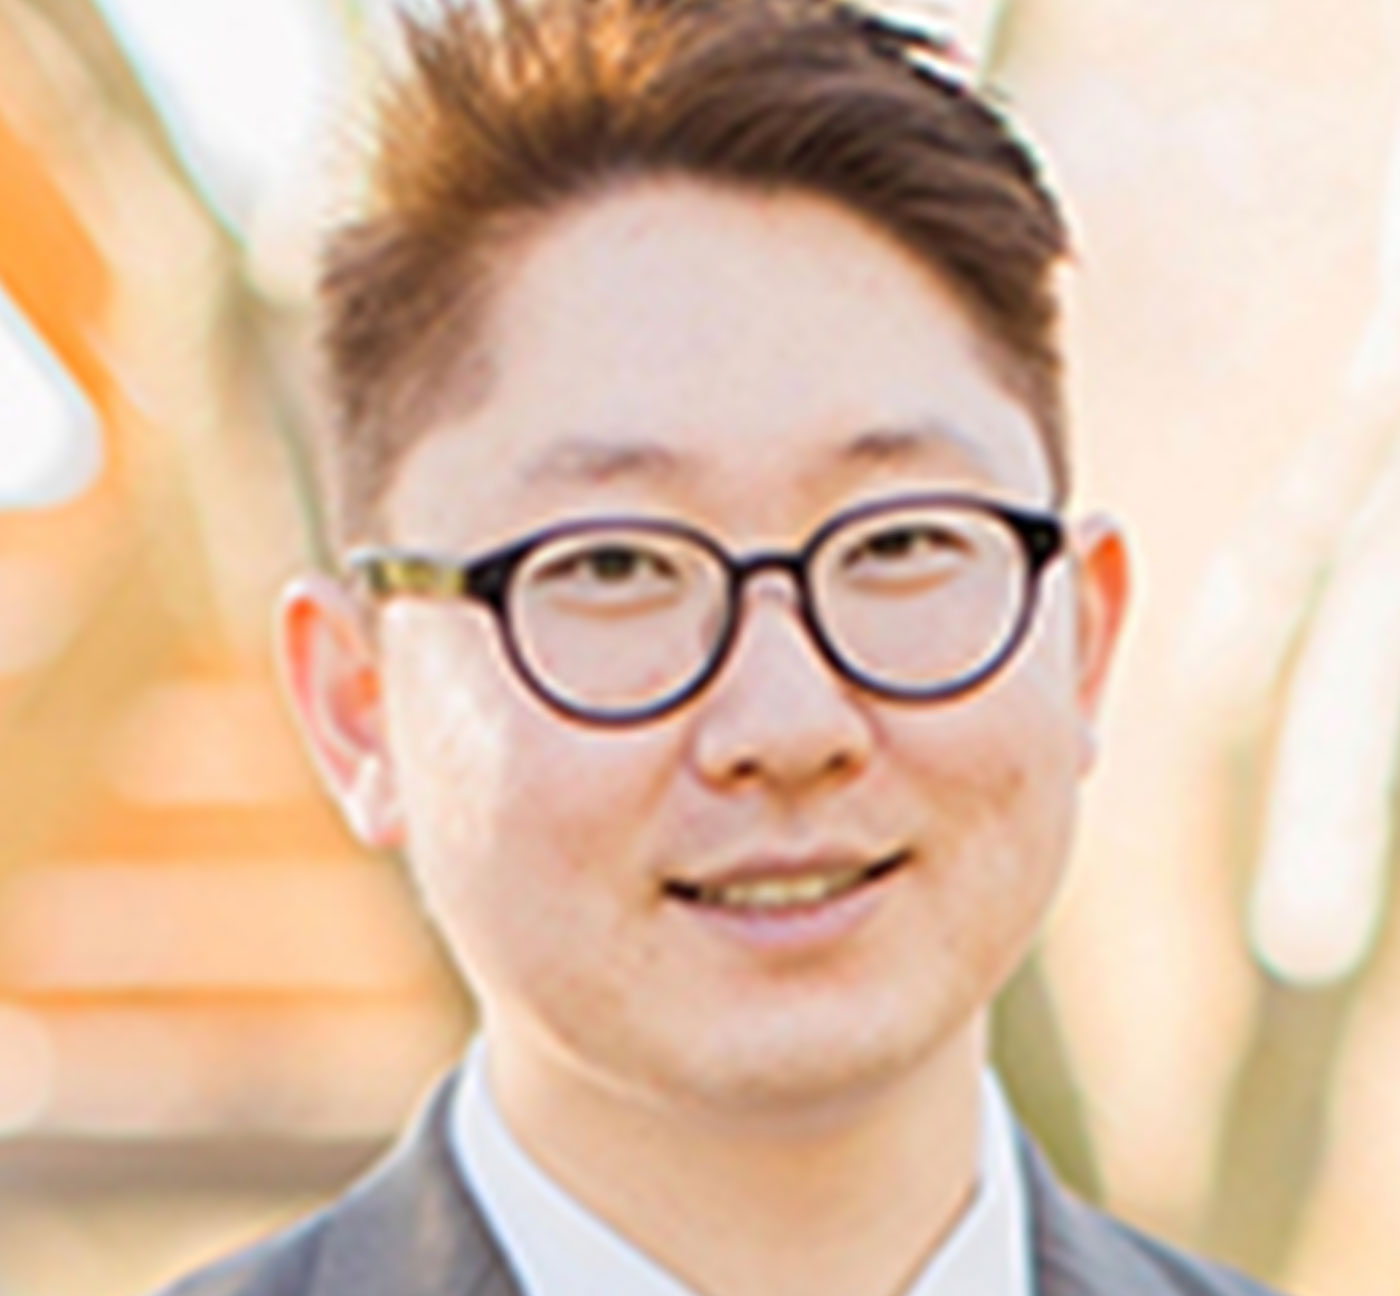 Samuel Oh DMD - Dallas Pediatric Dentist - Kids Dentist Dallas